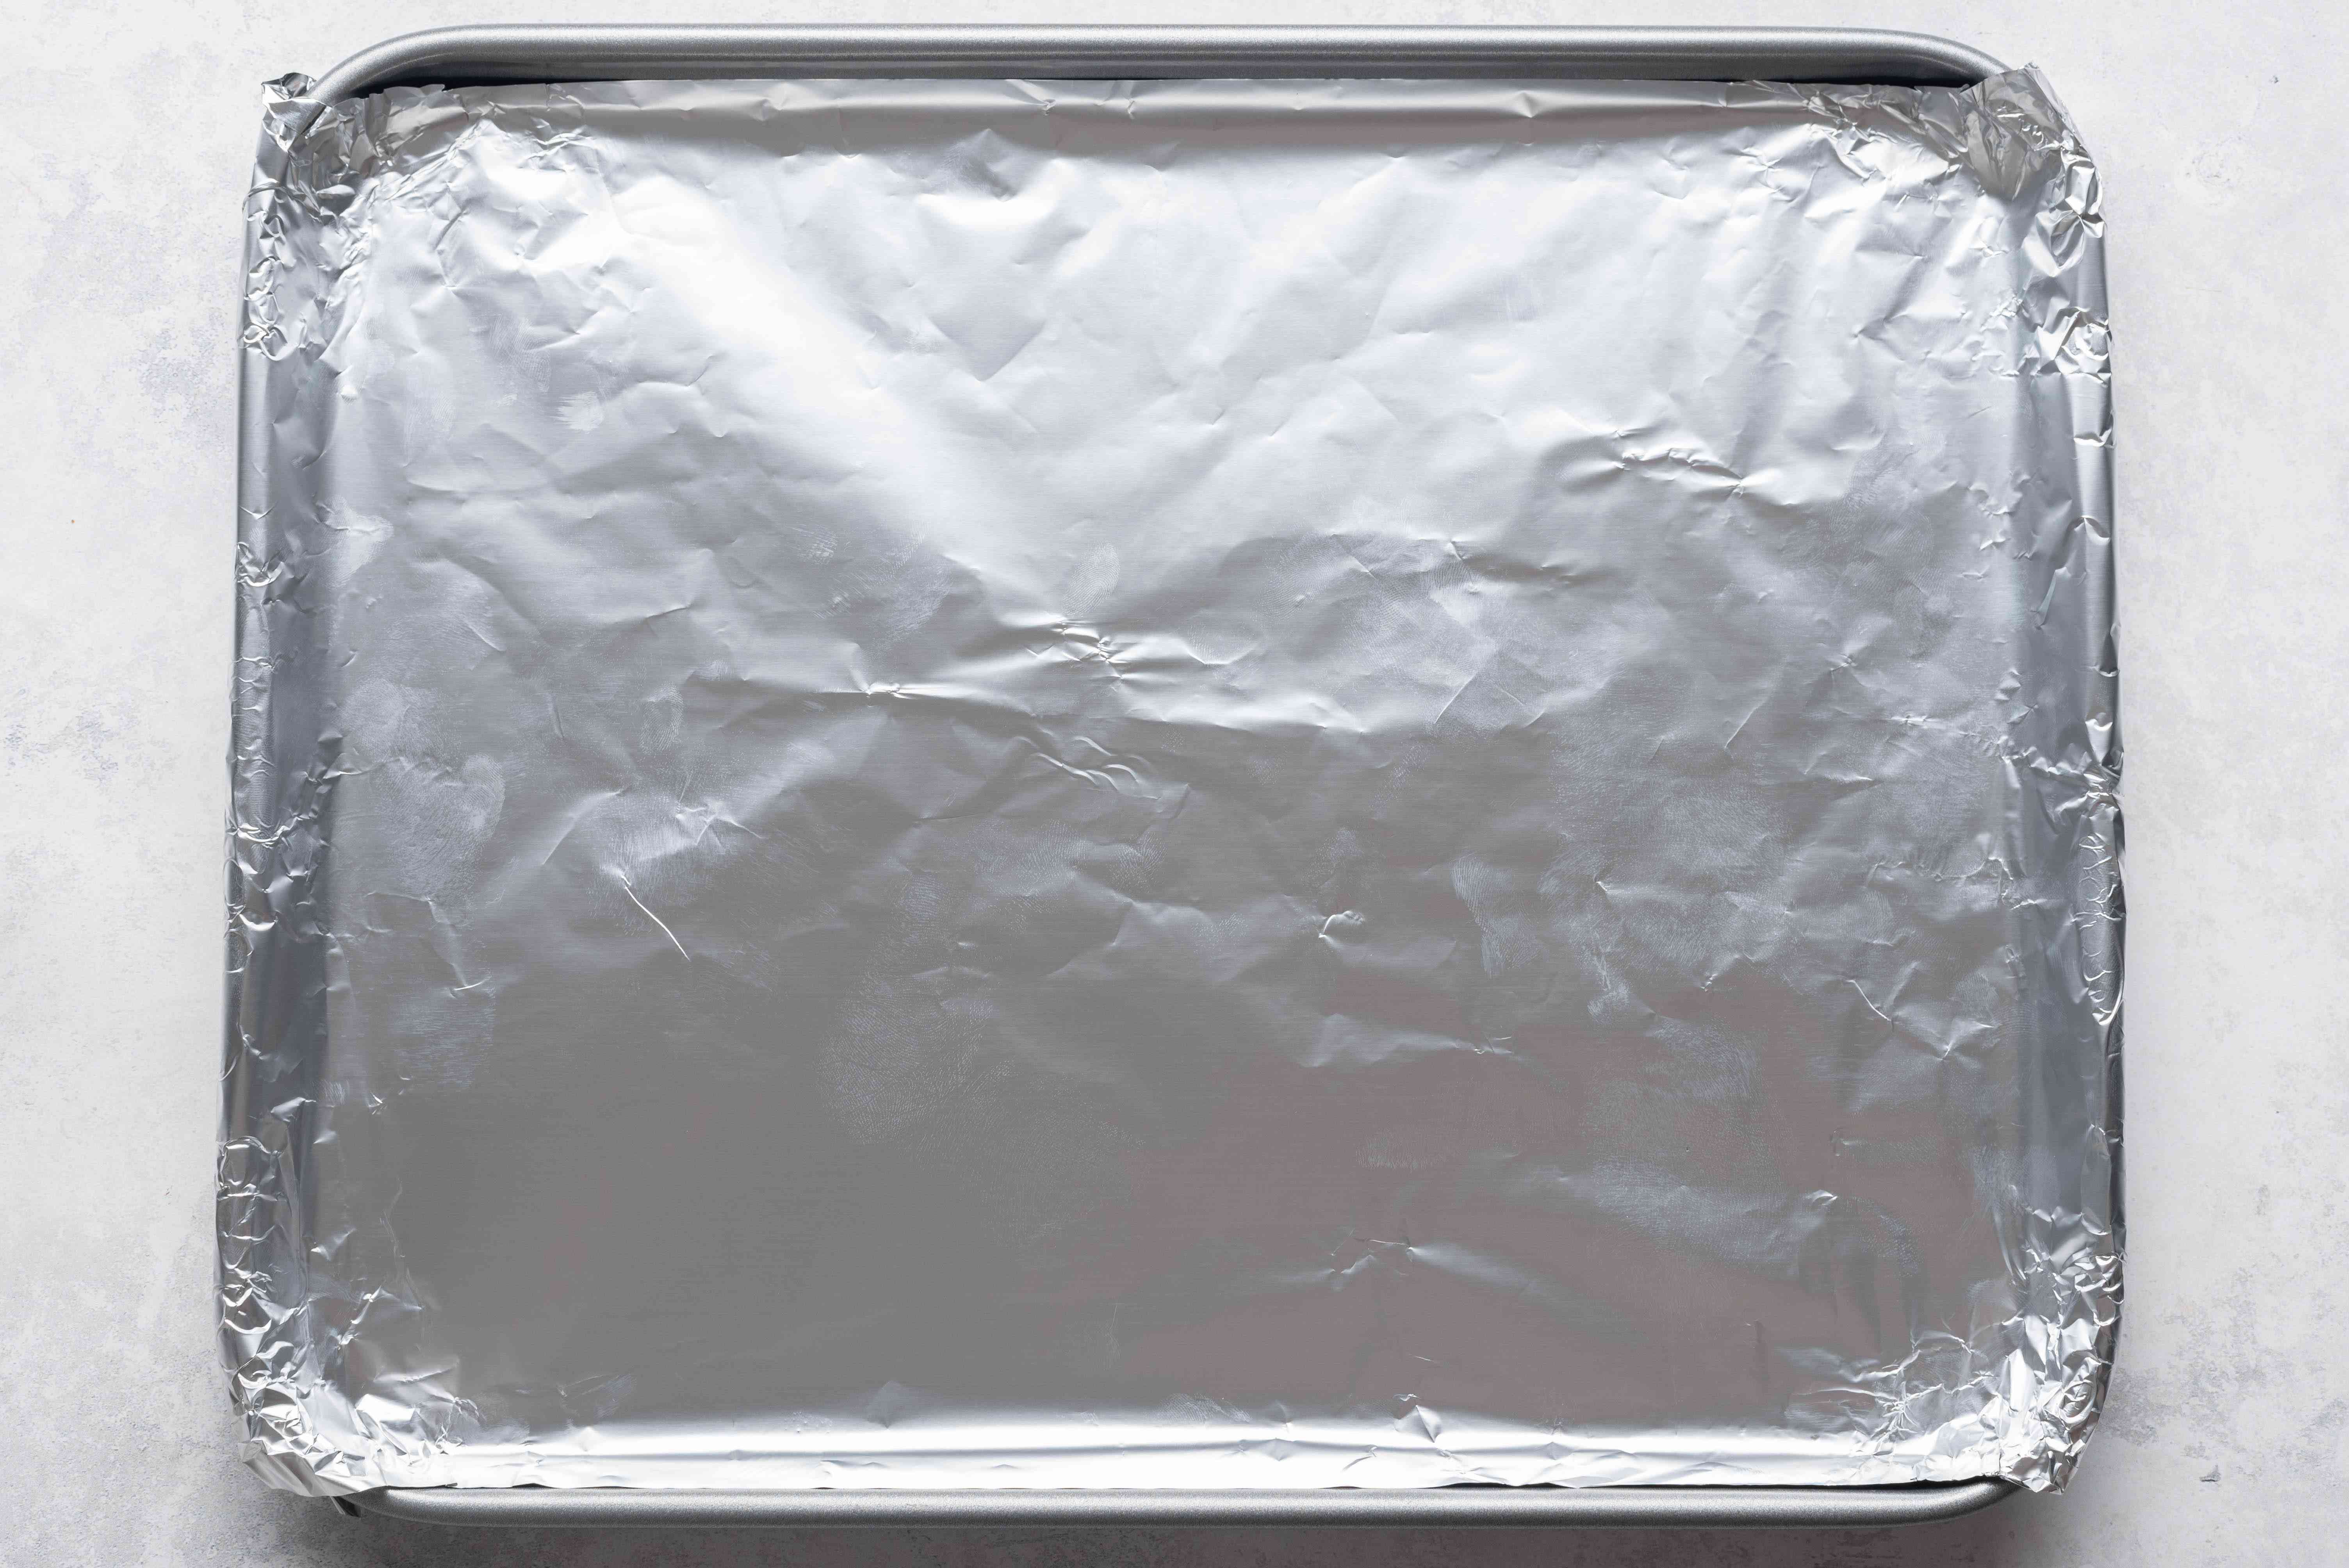 Baking pan lined with foil